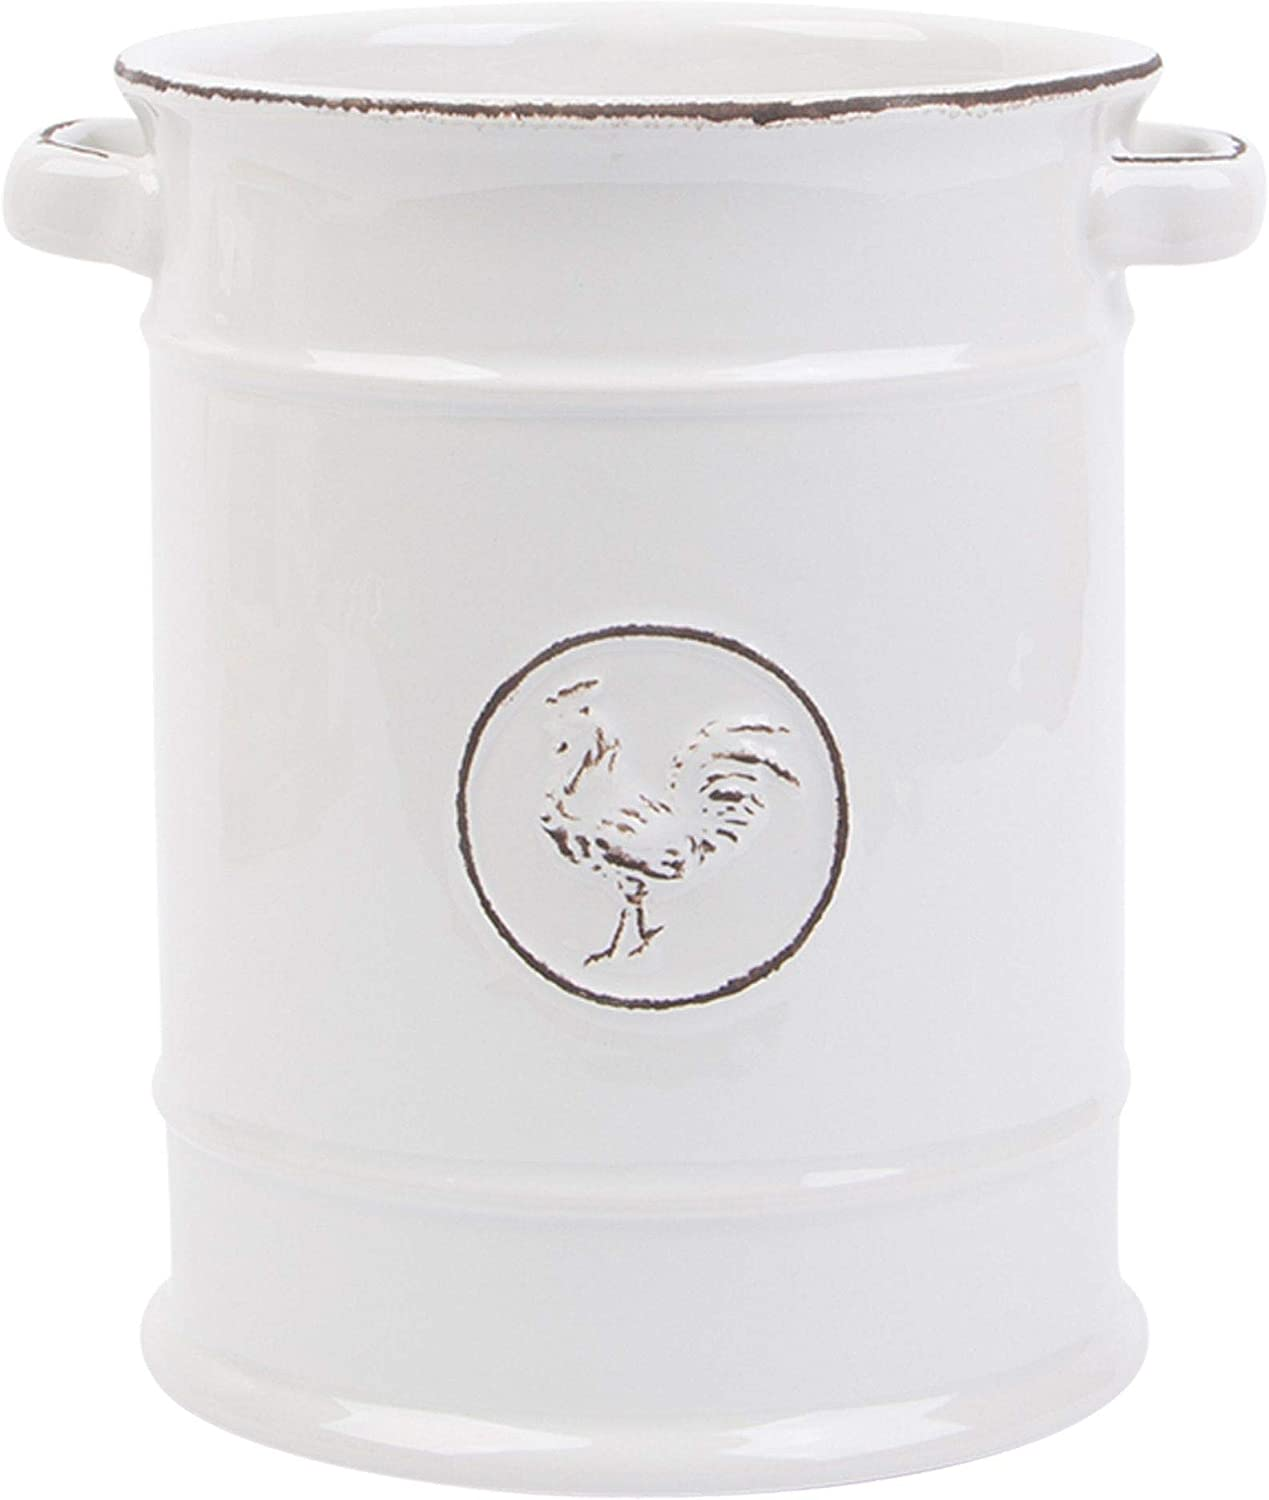 Light Grey Ceramic Two Handle Utensil Holder Crock with Embossed Rooster Logo, 7